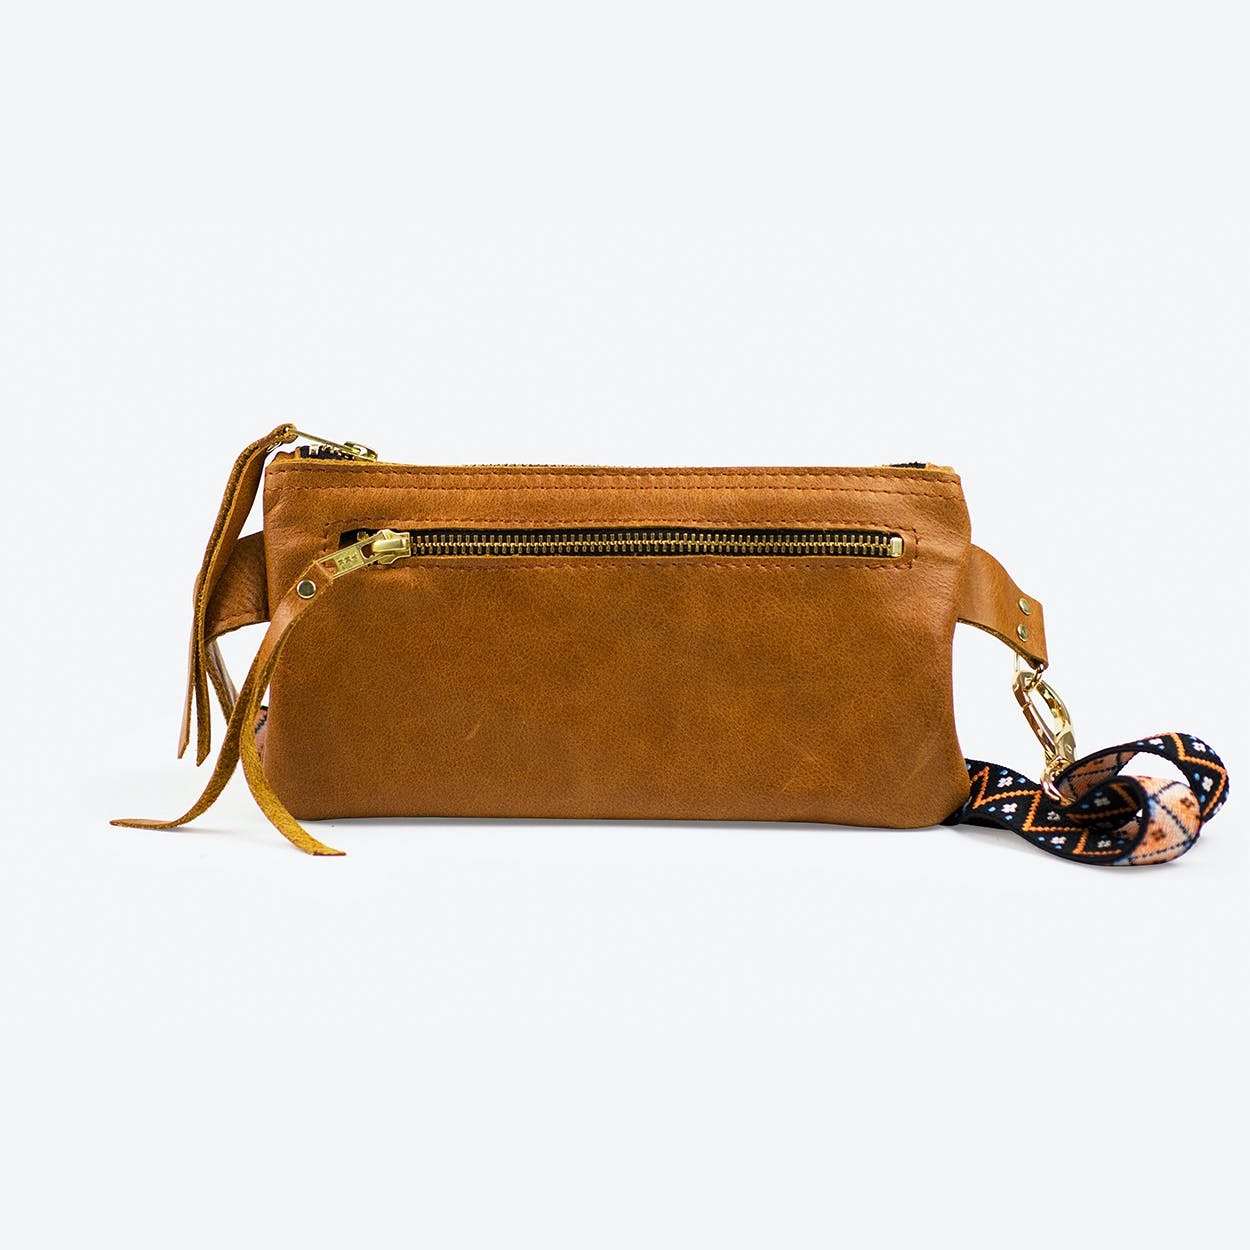 Hipbag Nachtigall in Tan Cow Leather and Bohemian Strap